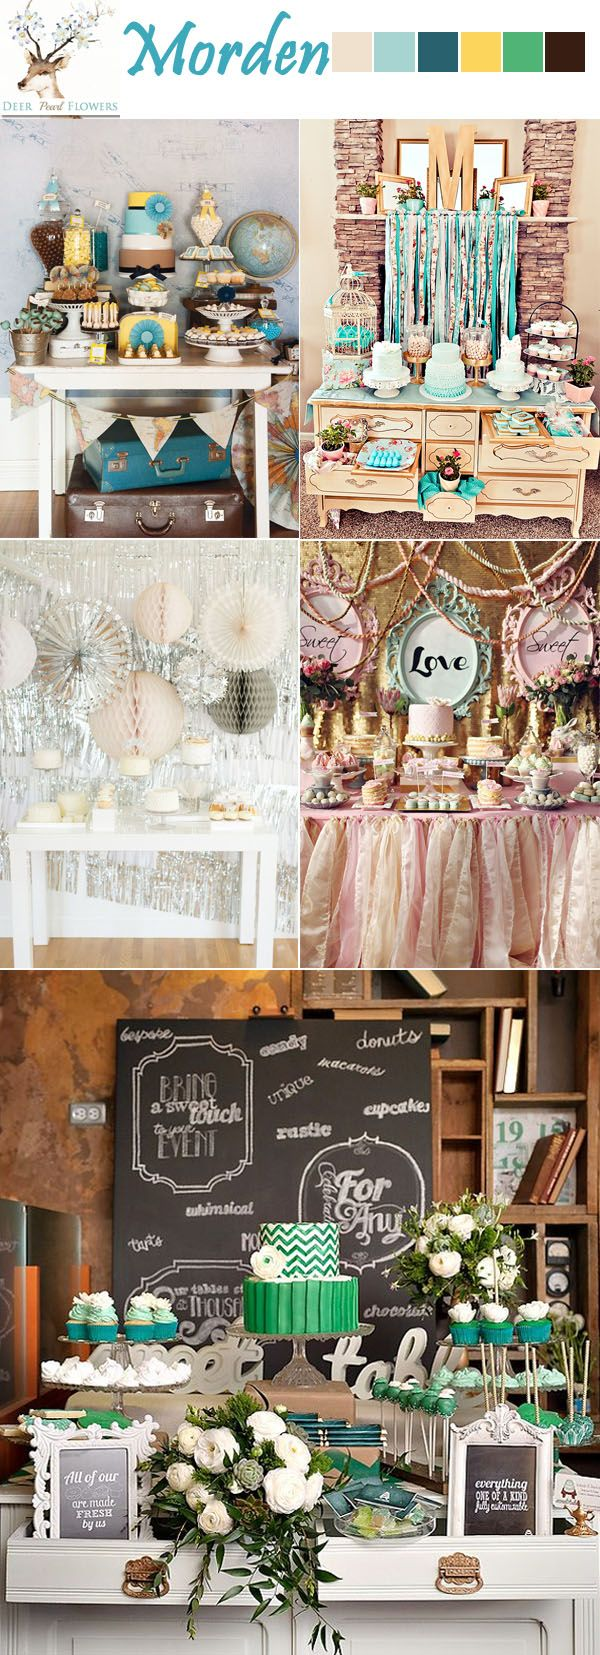 adorable pastel lime pink blush peach baby blue red wedding dessert table ideas / http://www.deerpearlflowers.com/38-adorable-wedding-dessert-table-ideas/morder-blue-green-yellow-rose-wedding-dessert-table-ideas/